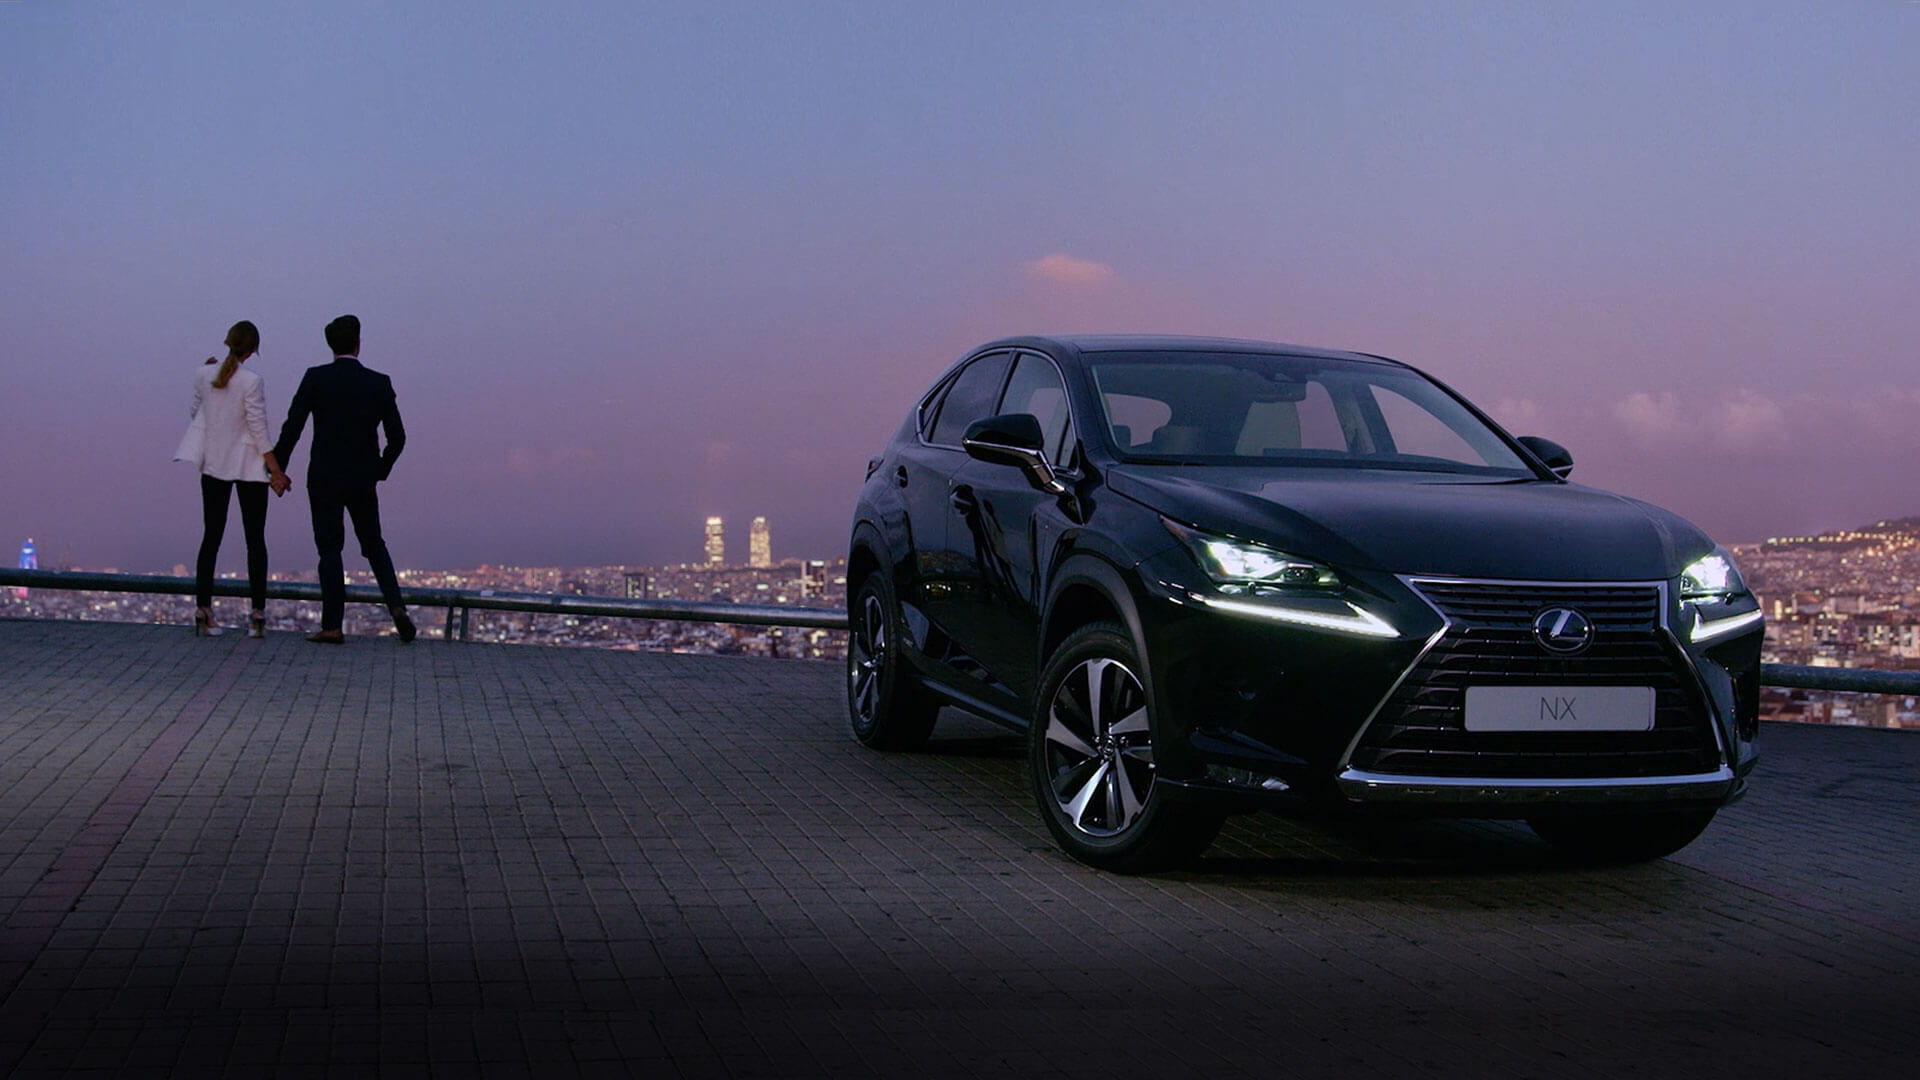 lexus nx luxury crossover | lexus europe